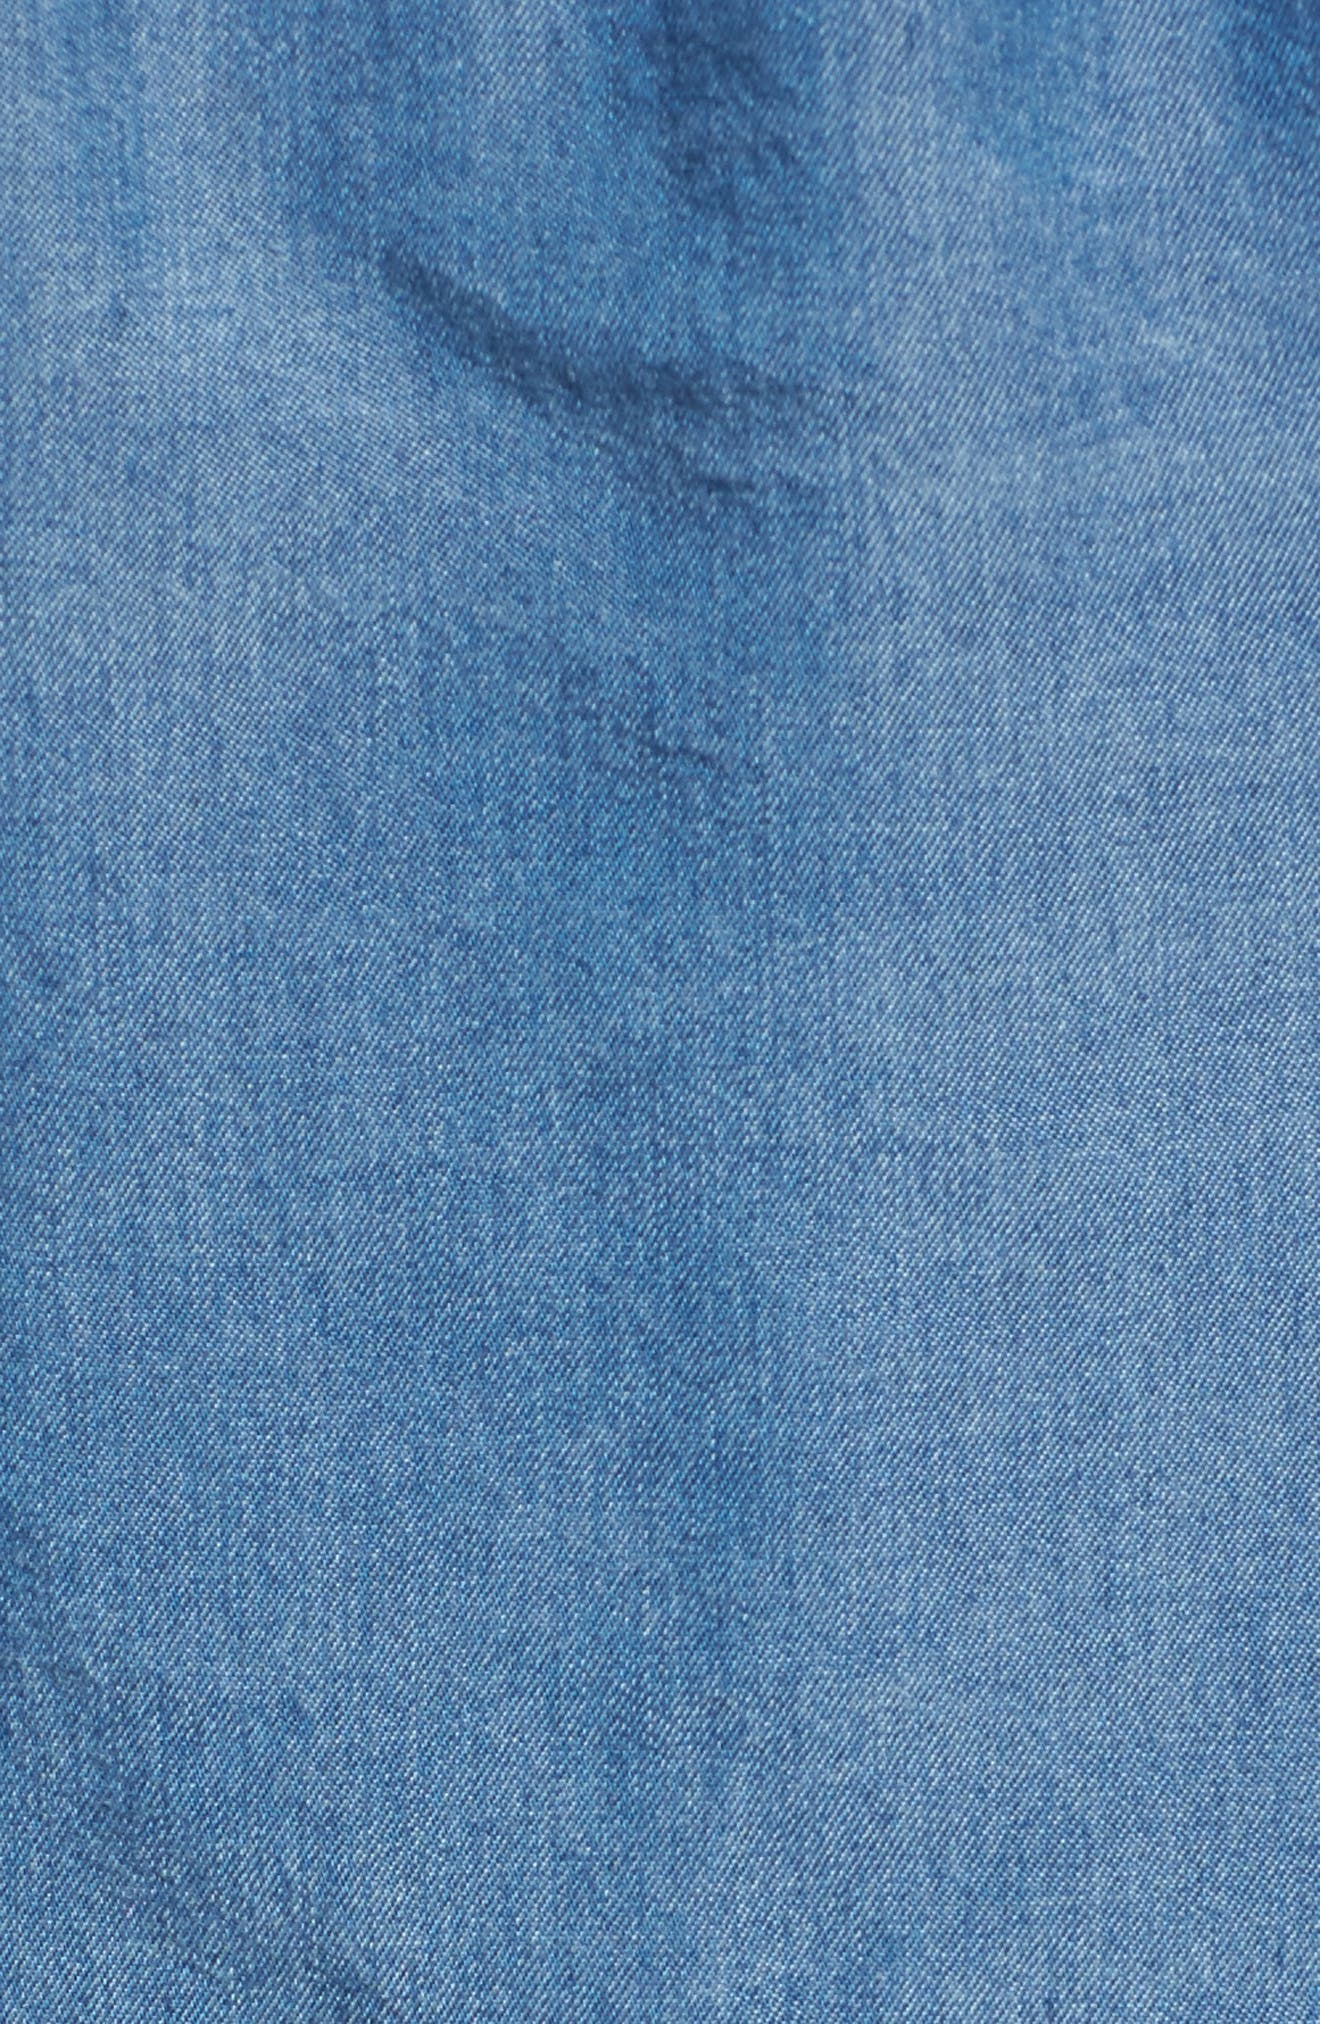 Off the Shoulder Chambray Top,                             Alternate thumbnail 5, color,                             466